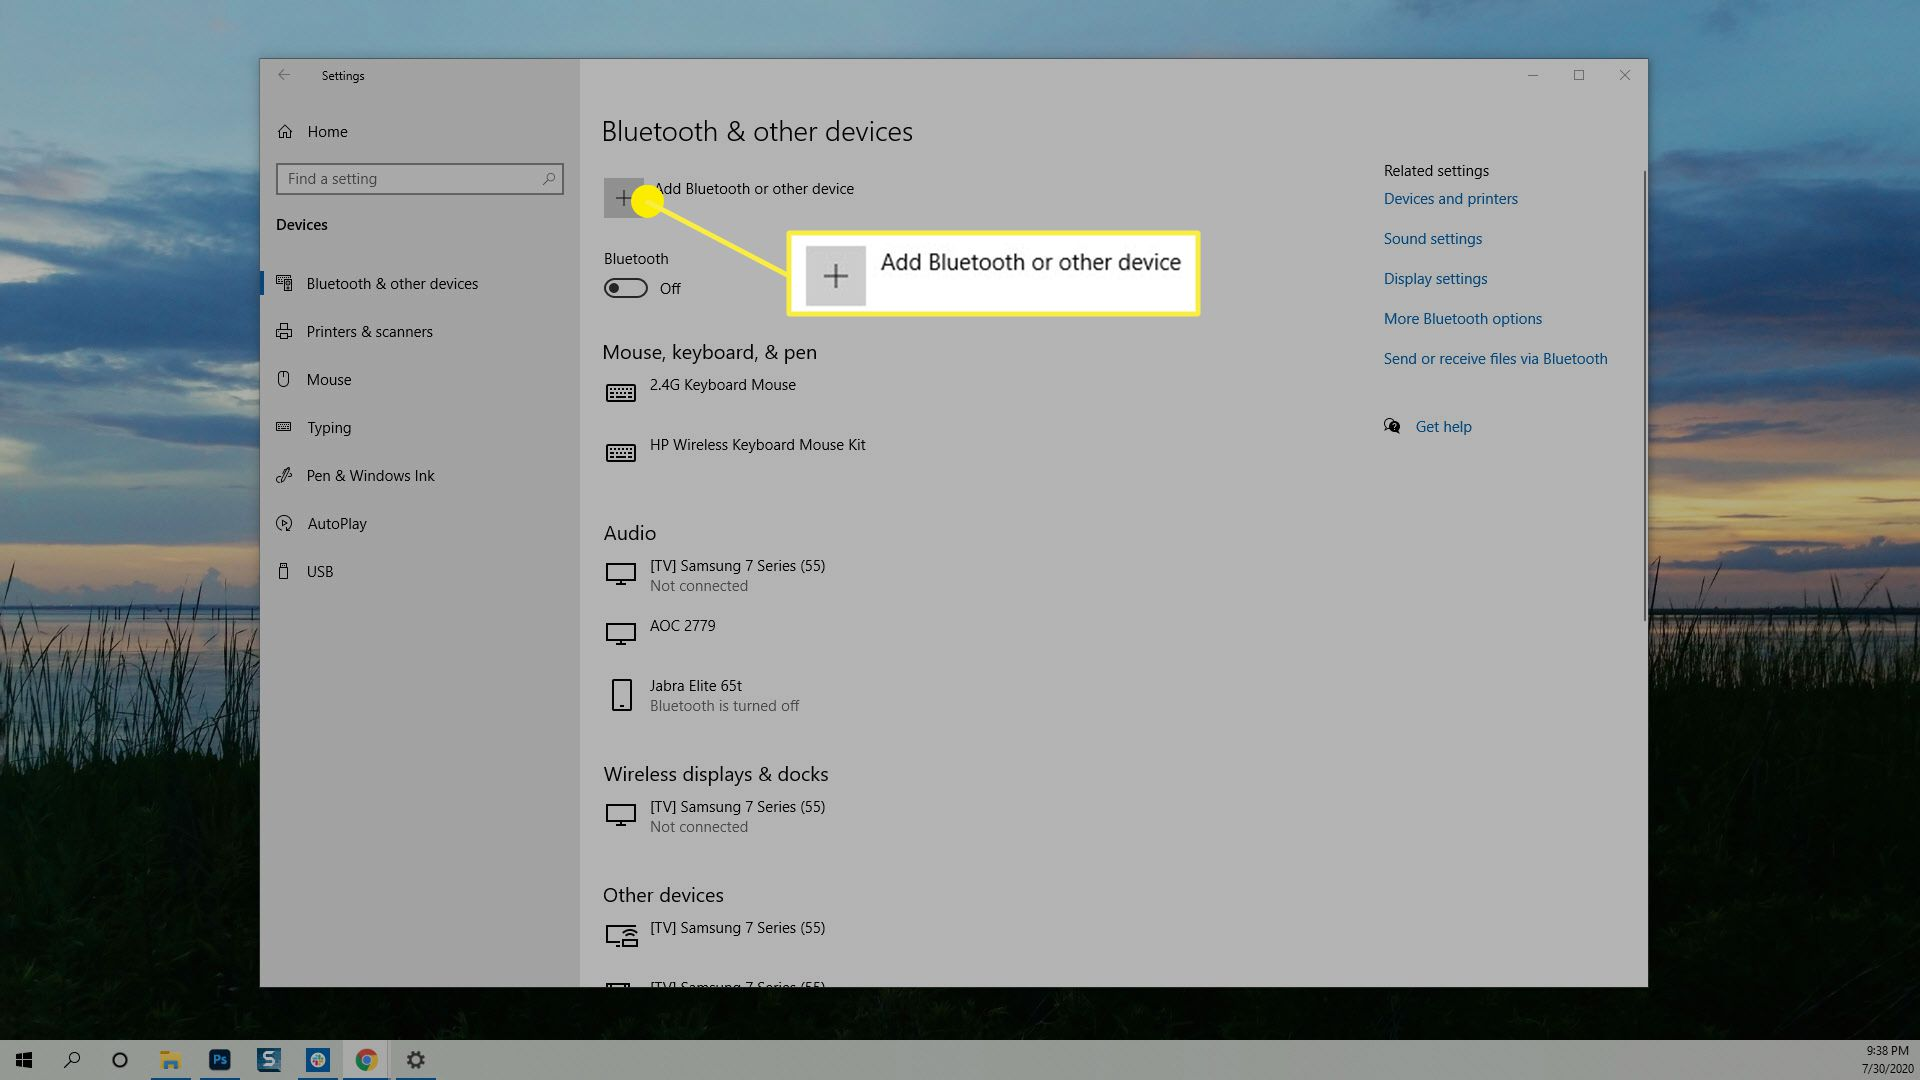 The Add Bluetooth or other device option in Windows Bluetooth & other devices.